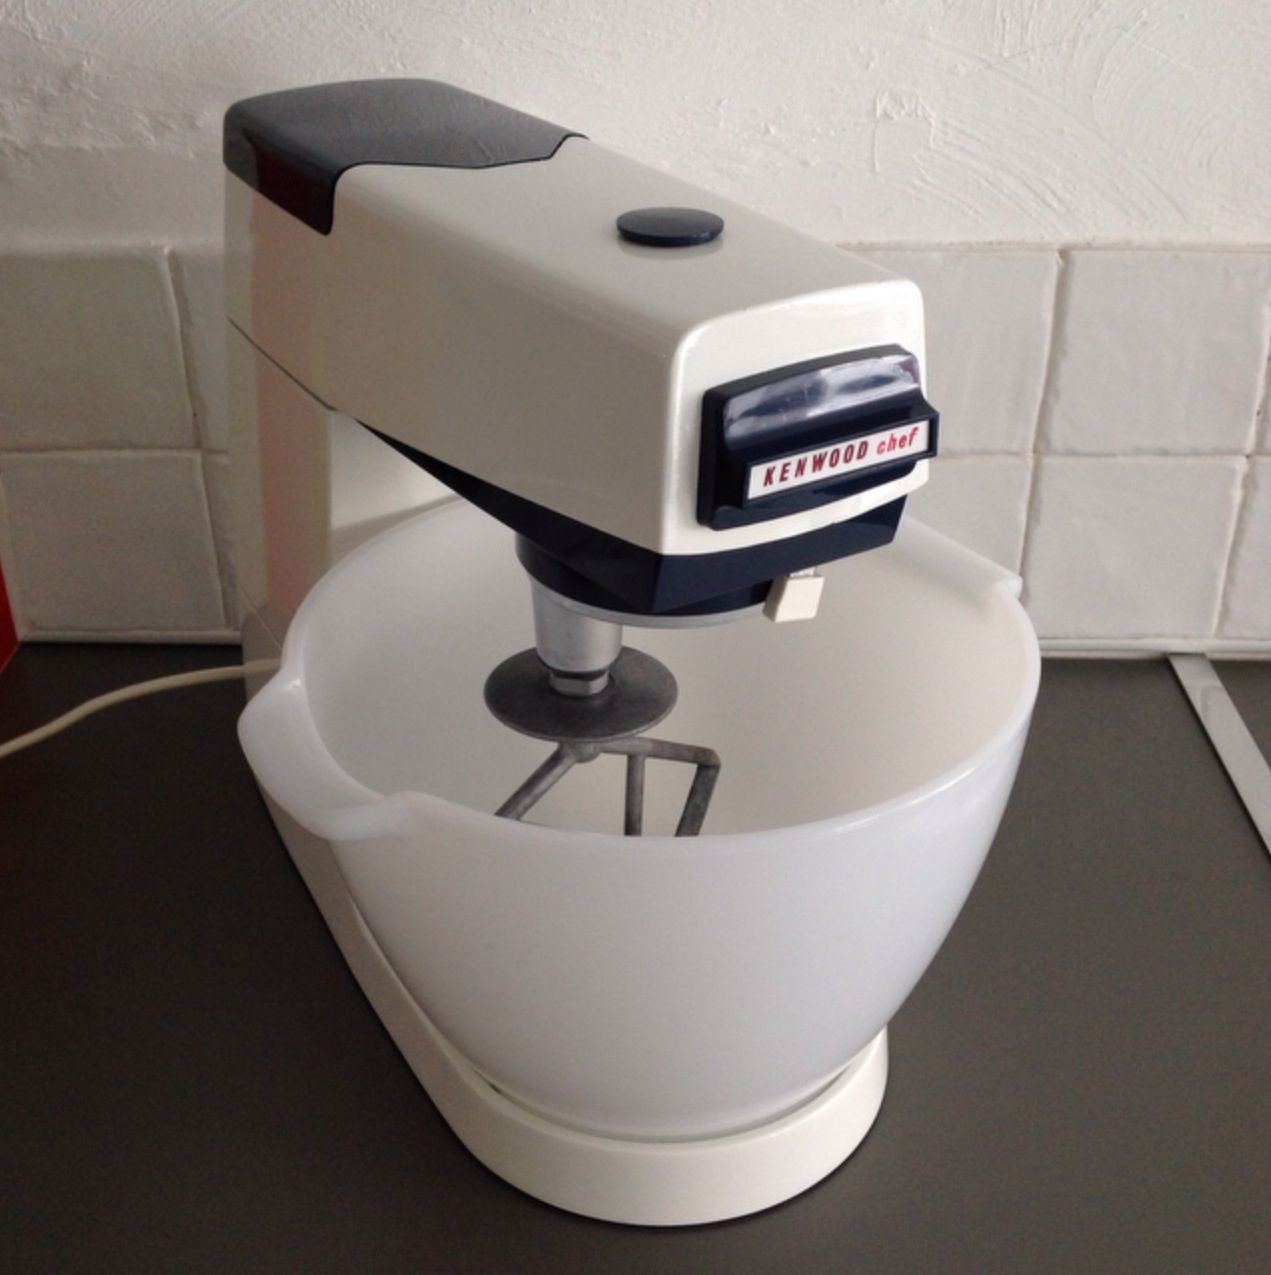 Kenwood Chef A701a Stand Mixer Kenneth Grange